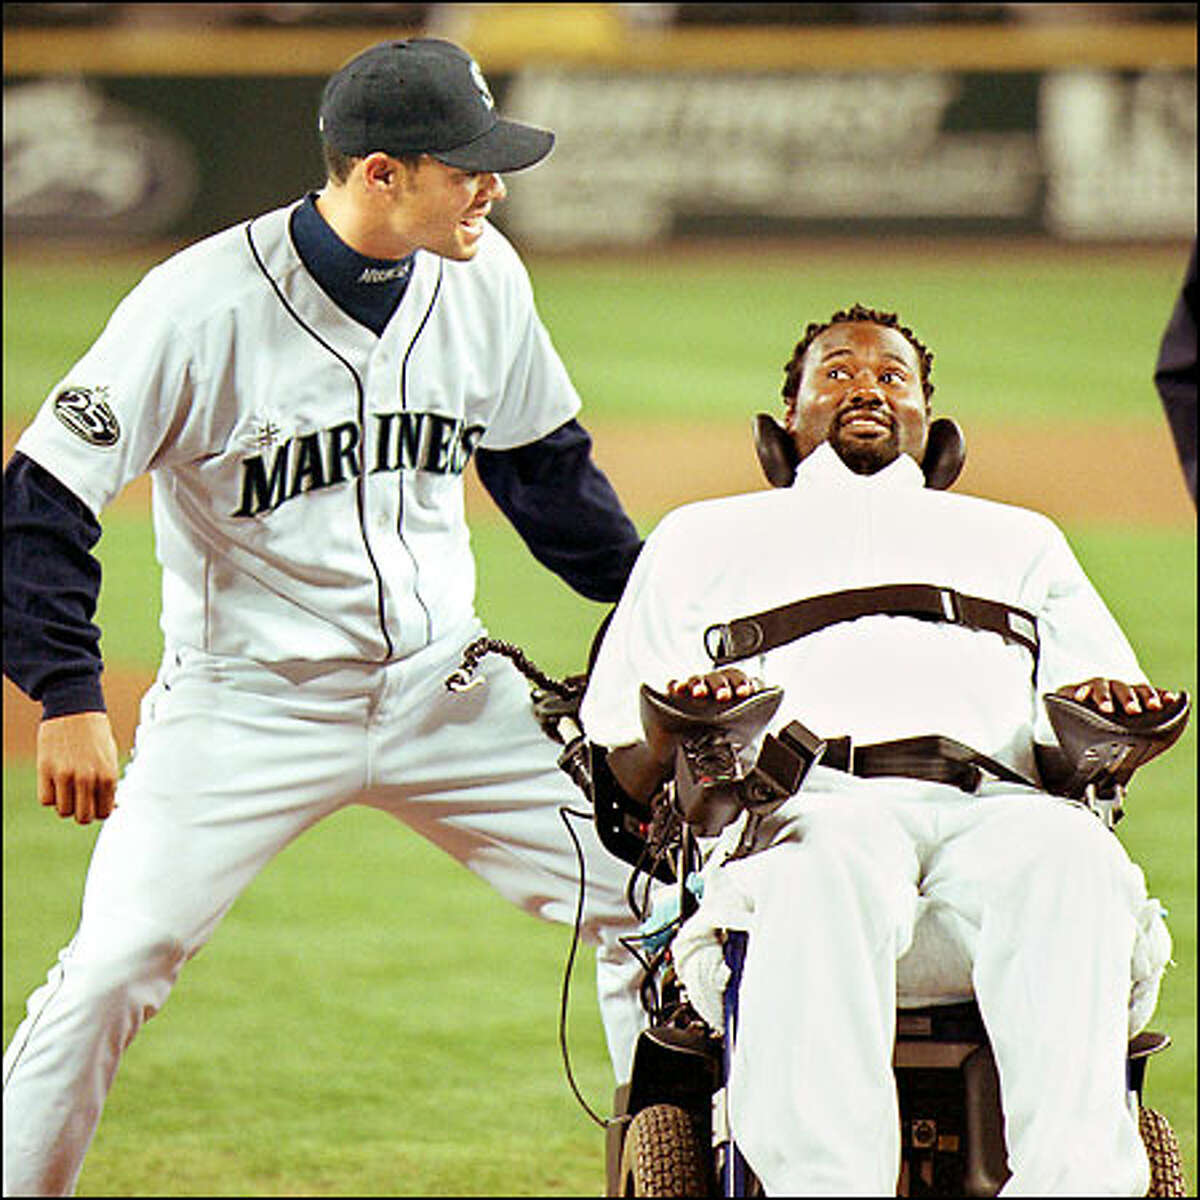 Former University of Washington football player Curtis Williams jokes with Mariner Charles Gipson before a game at Safeco Field on April 24. Williams, who threw out the first pitch prior to the game against Anaheim, became paralyzed after being injured during a game at Stanford on Oct. 28, 2000. Williams died in Clovis, Calif., on May 6.